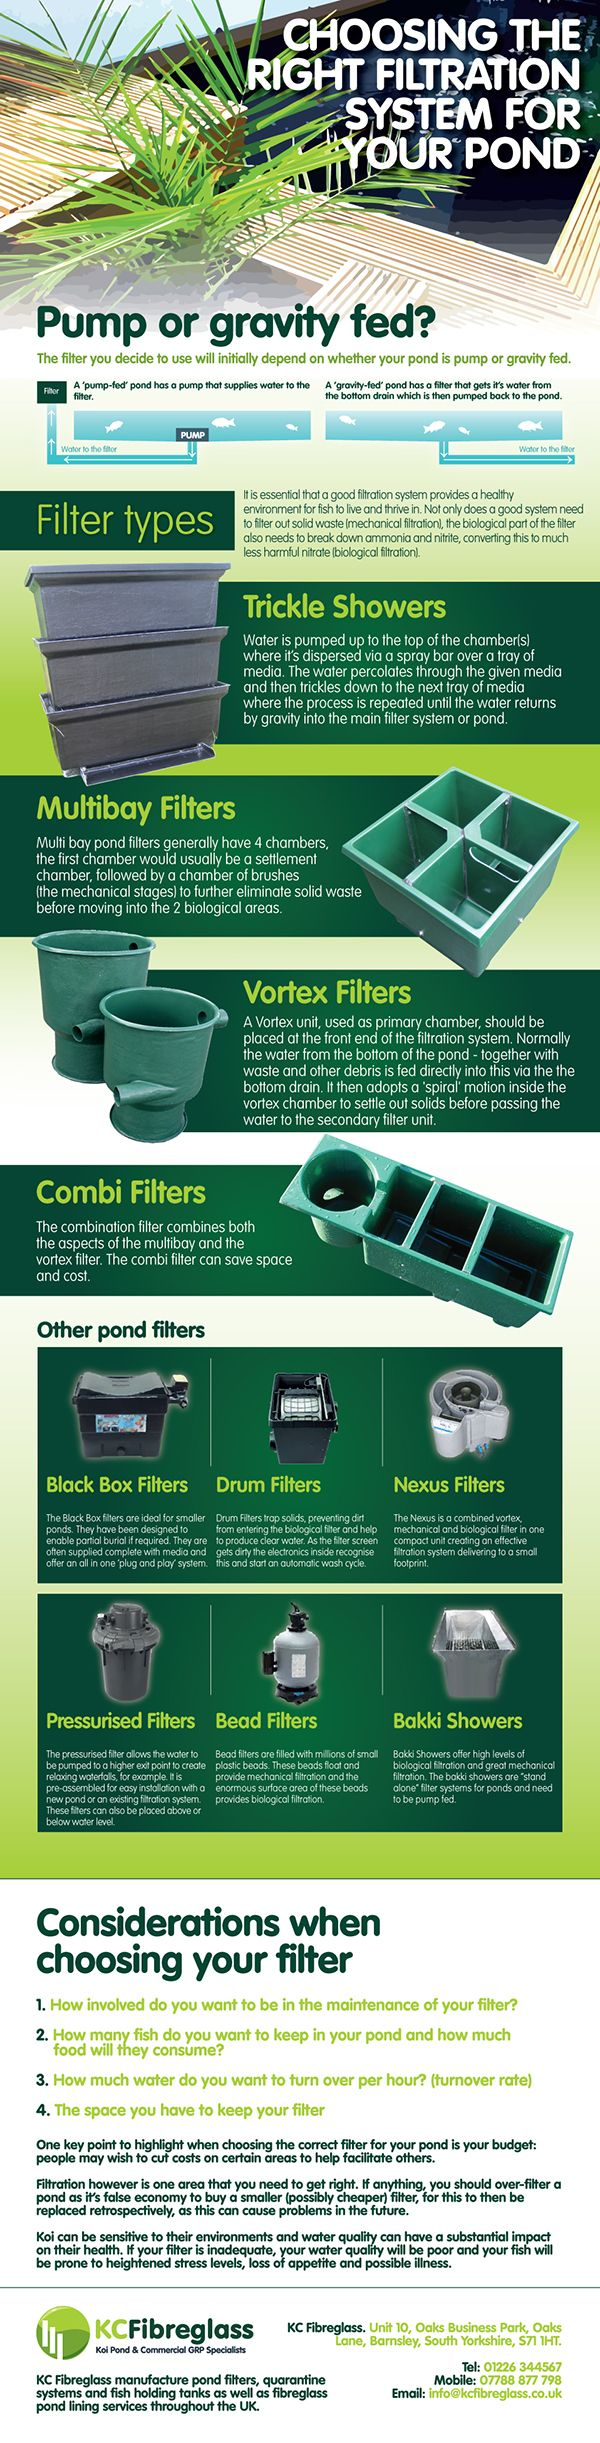 Choose right pond filters for your Koi pond from KC Fibre Glass.KC Fibreglass offer a huge range of Koi pond filters at a reasonable price. Shop now to visit website - http://kcfibreglass.co.uk and get 100% safe guaranteed.